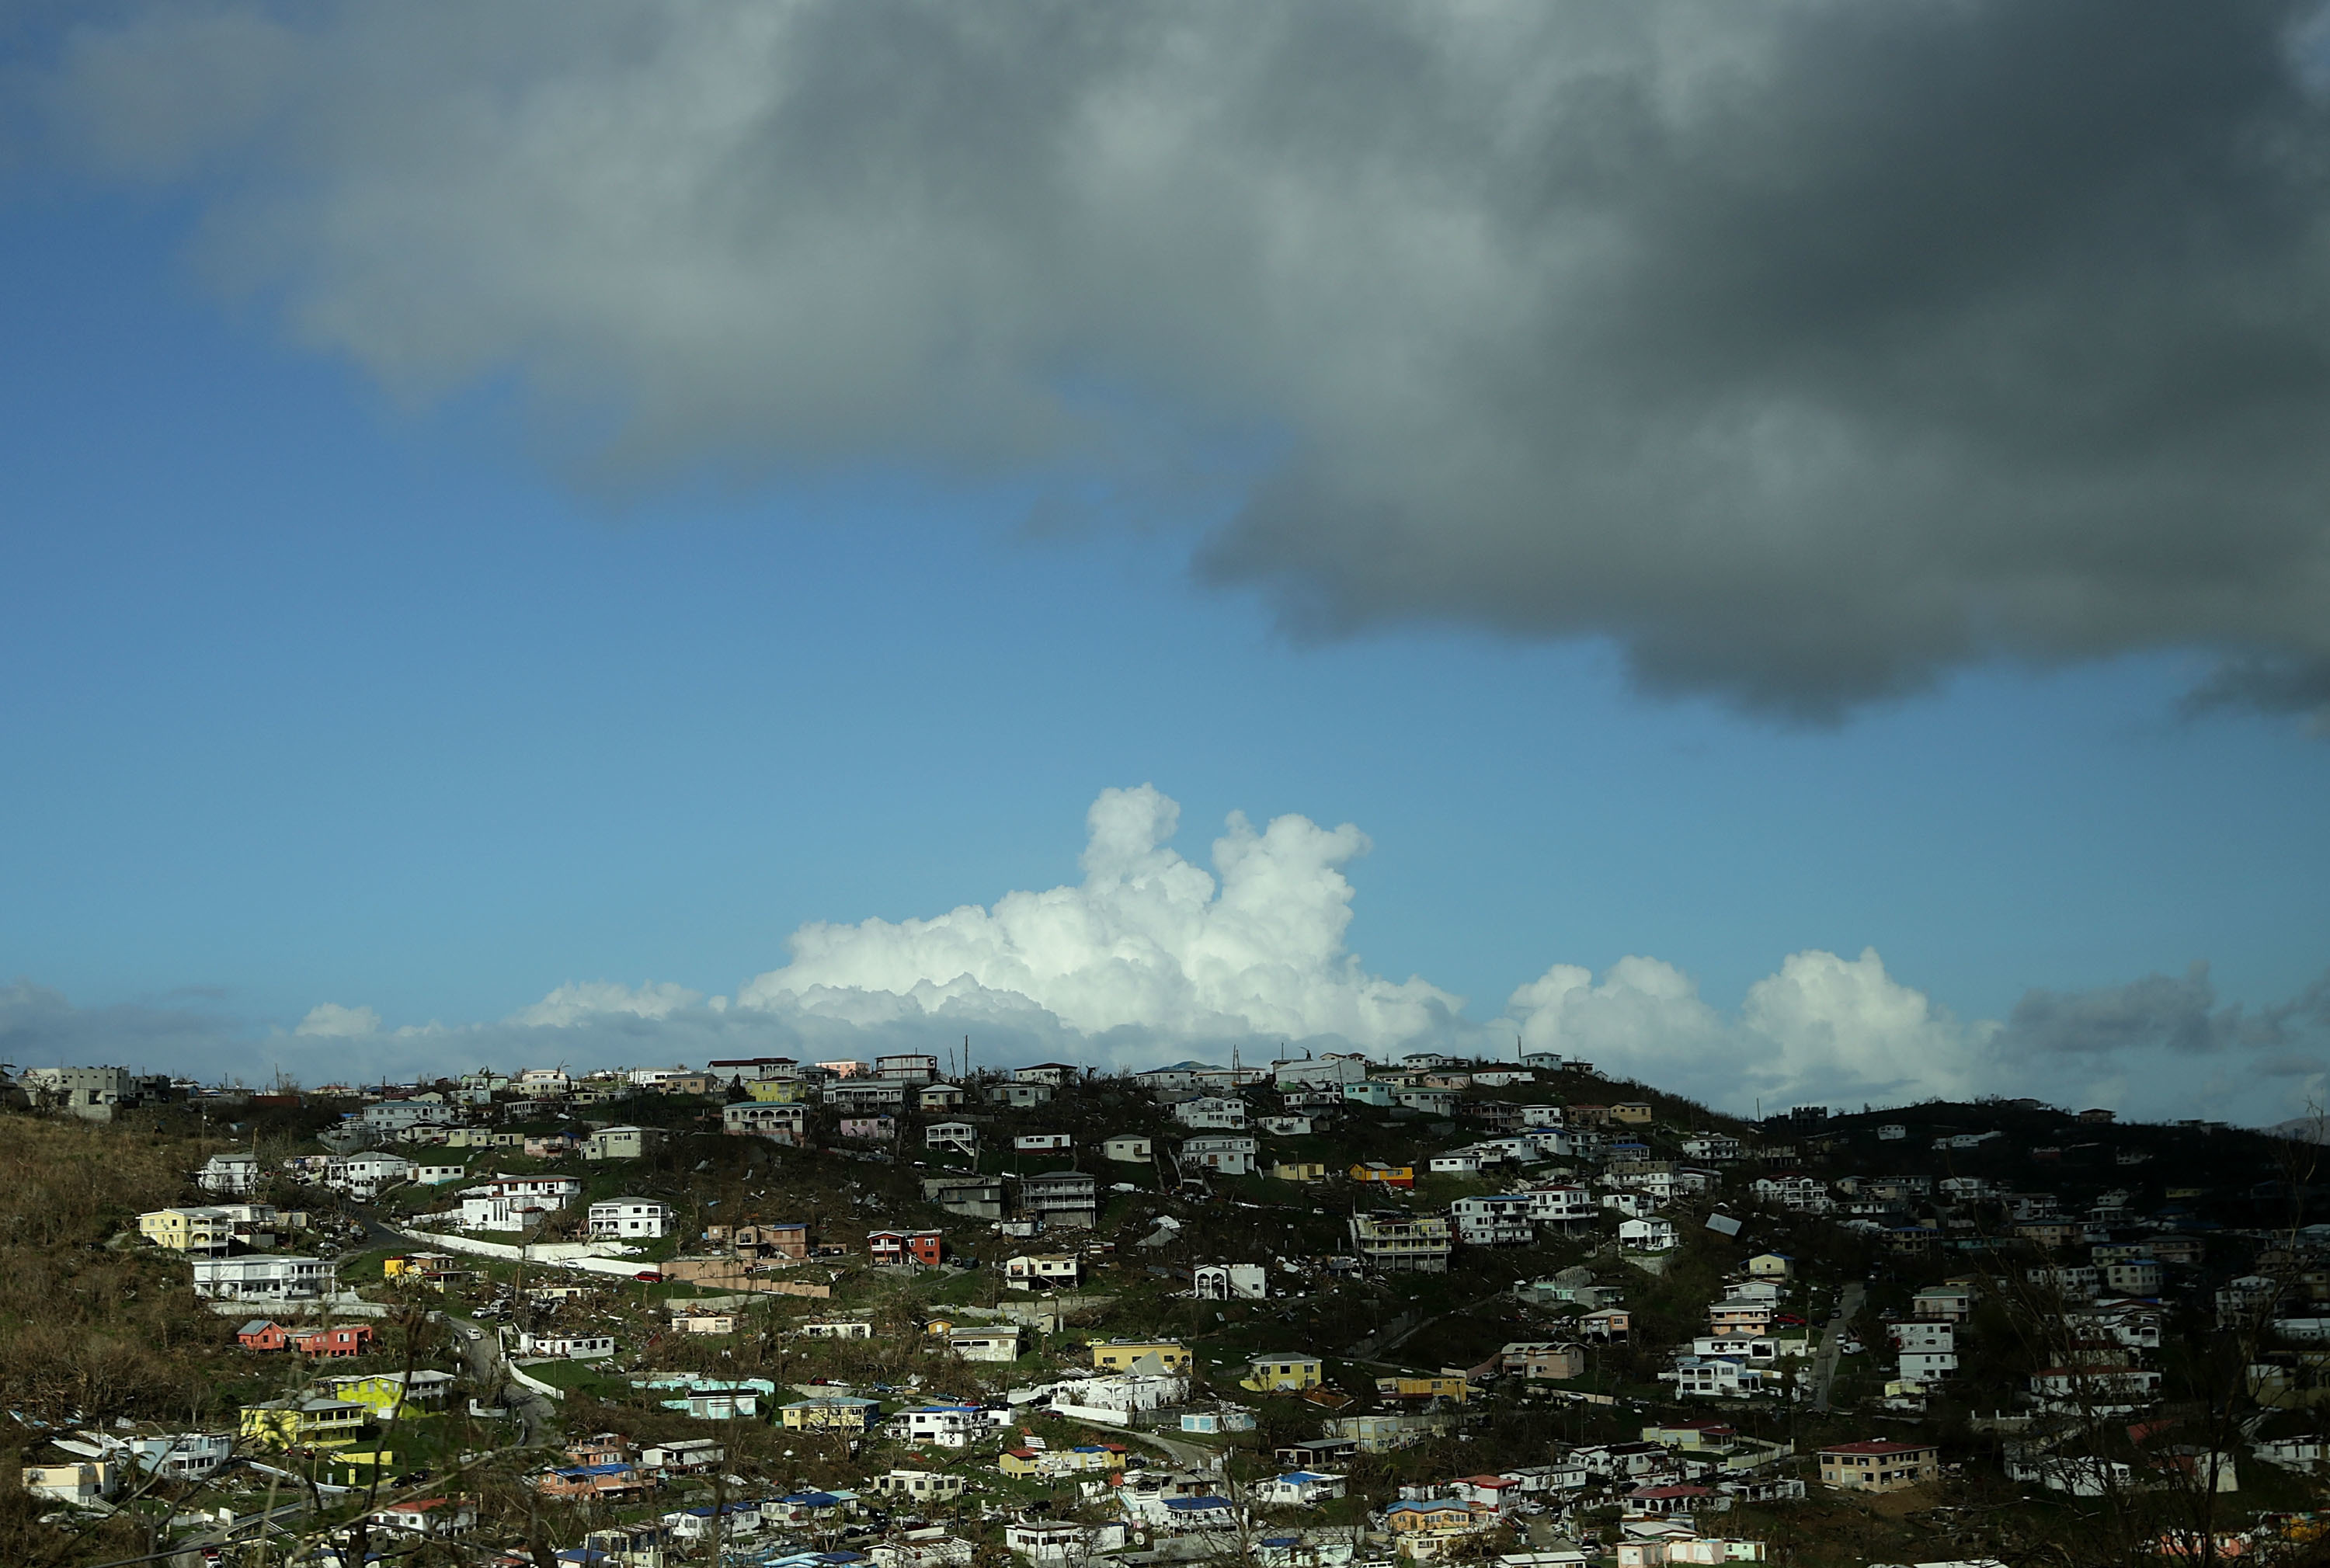 After Two Hurricanes, A 'Floodgate' Of Mental Health Issues In The Virgin Islands